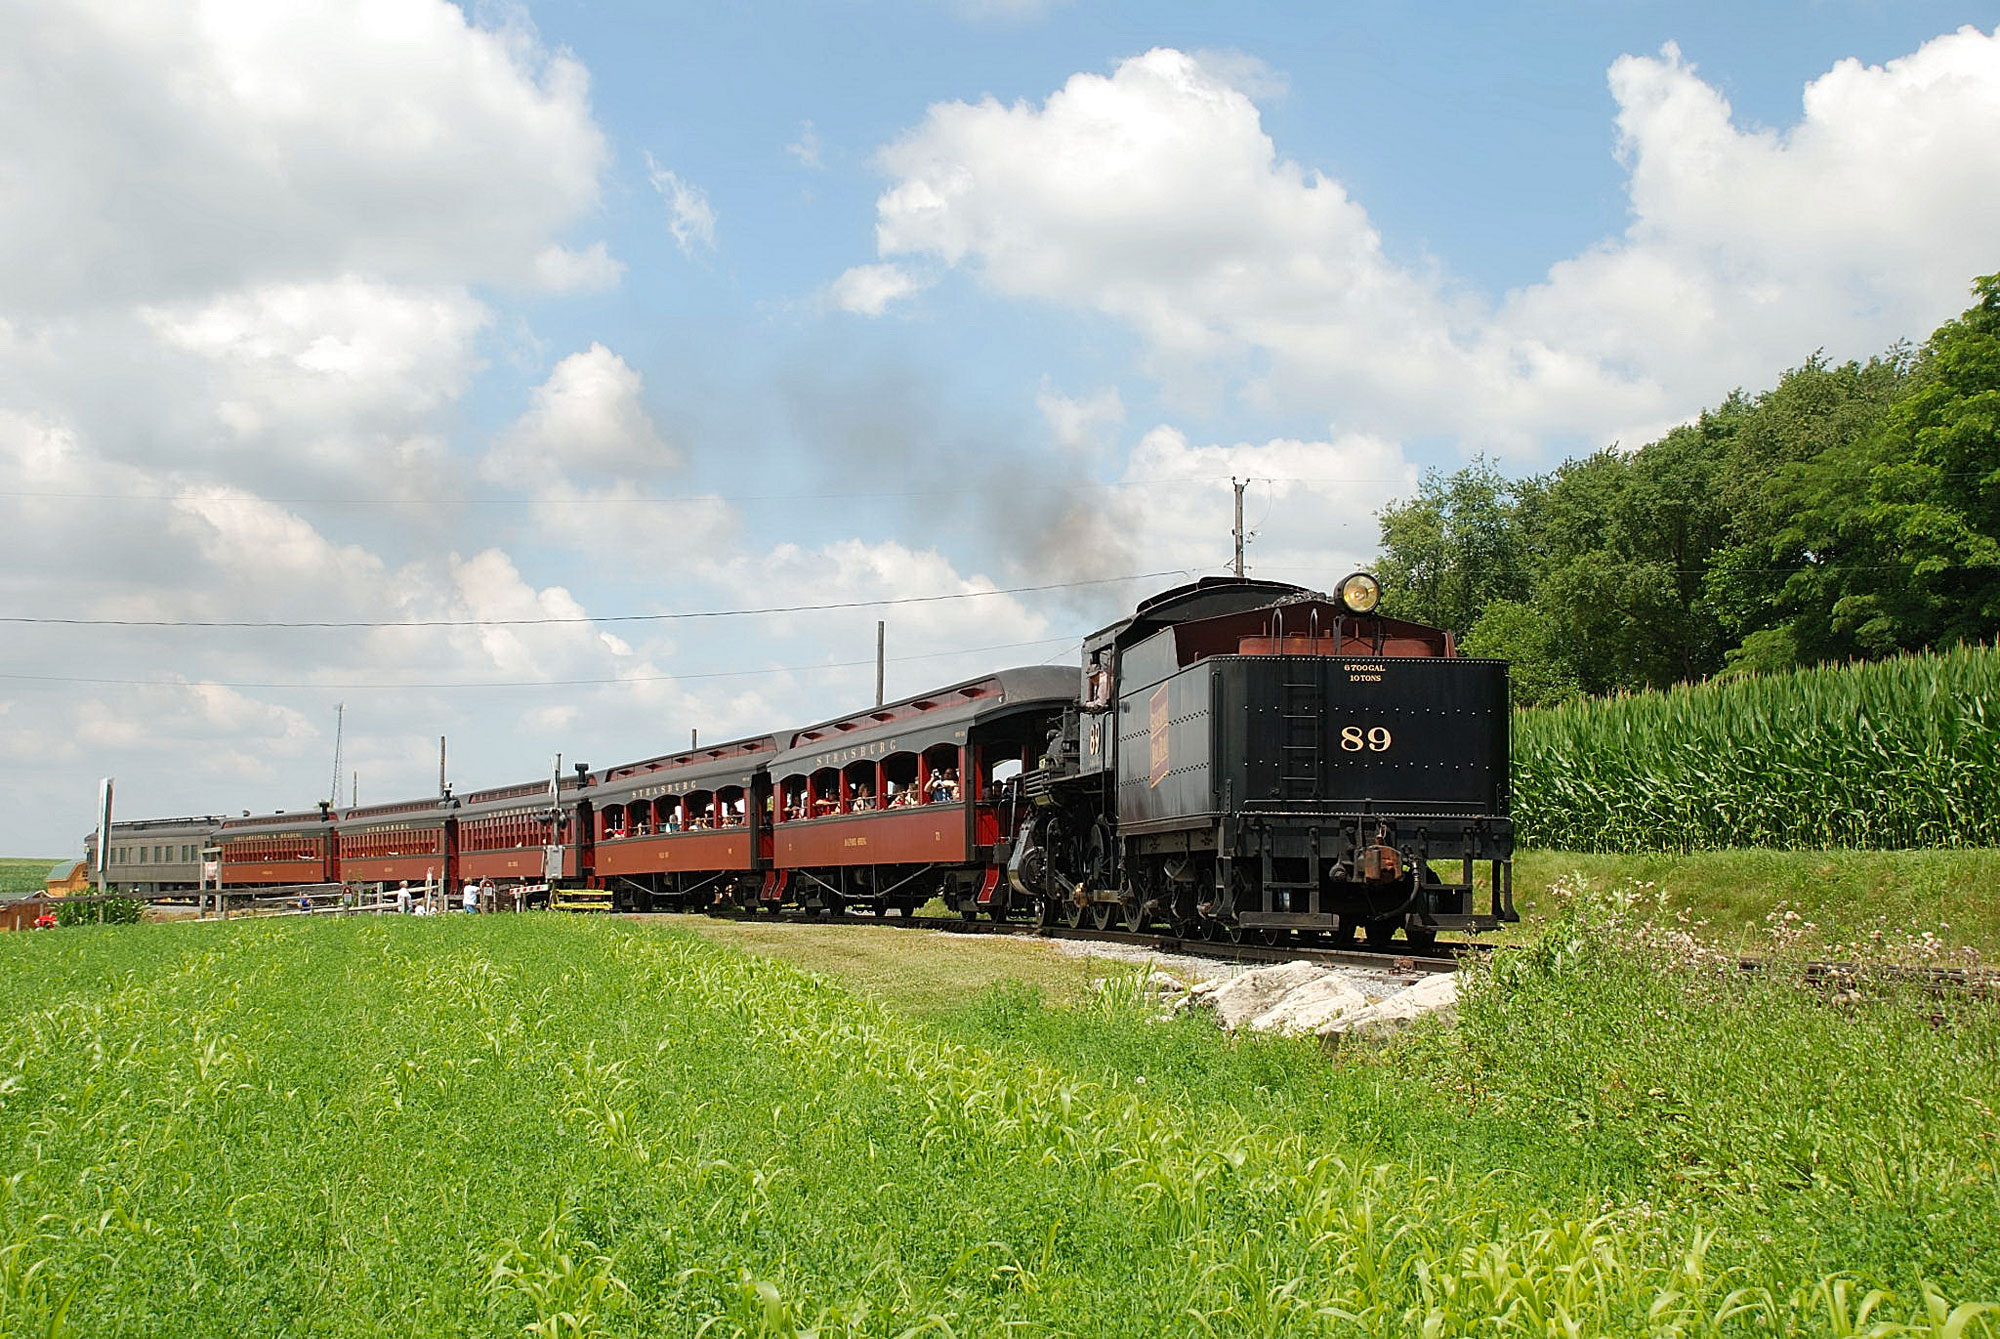 What are some scenic routes for train excursions?